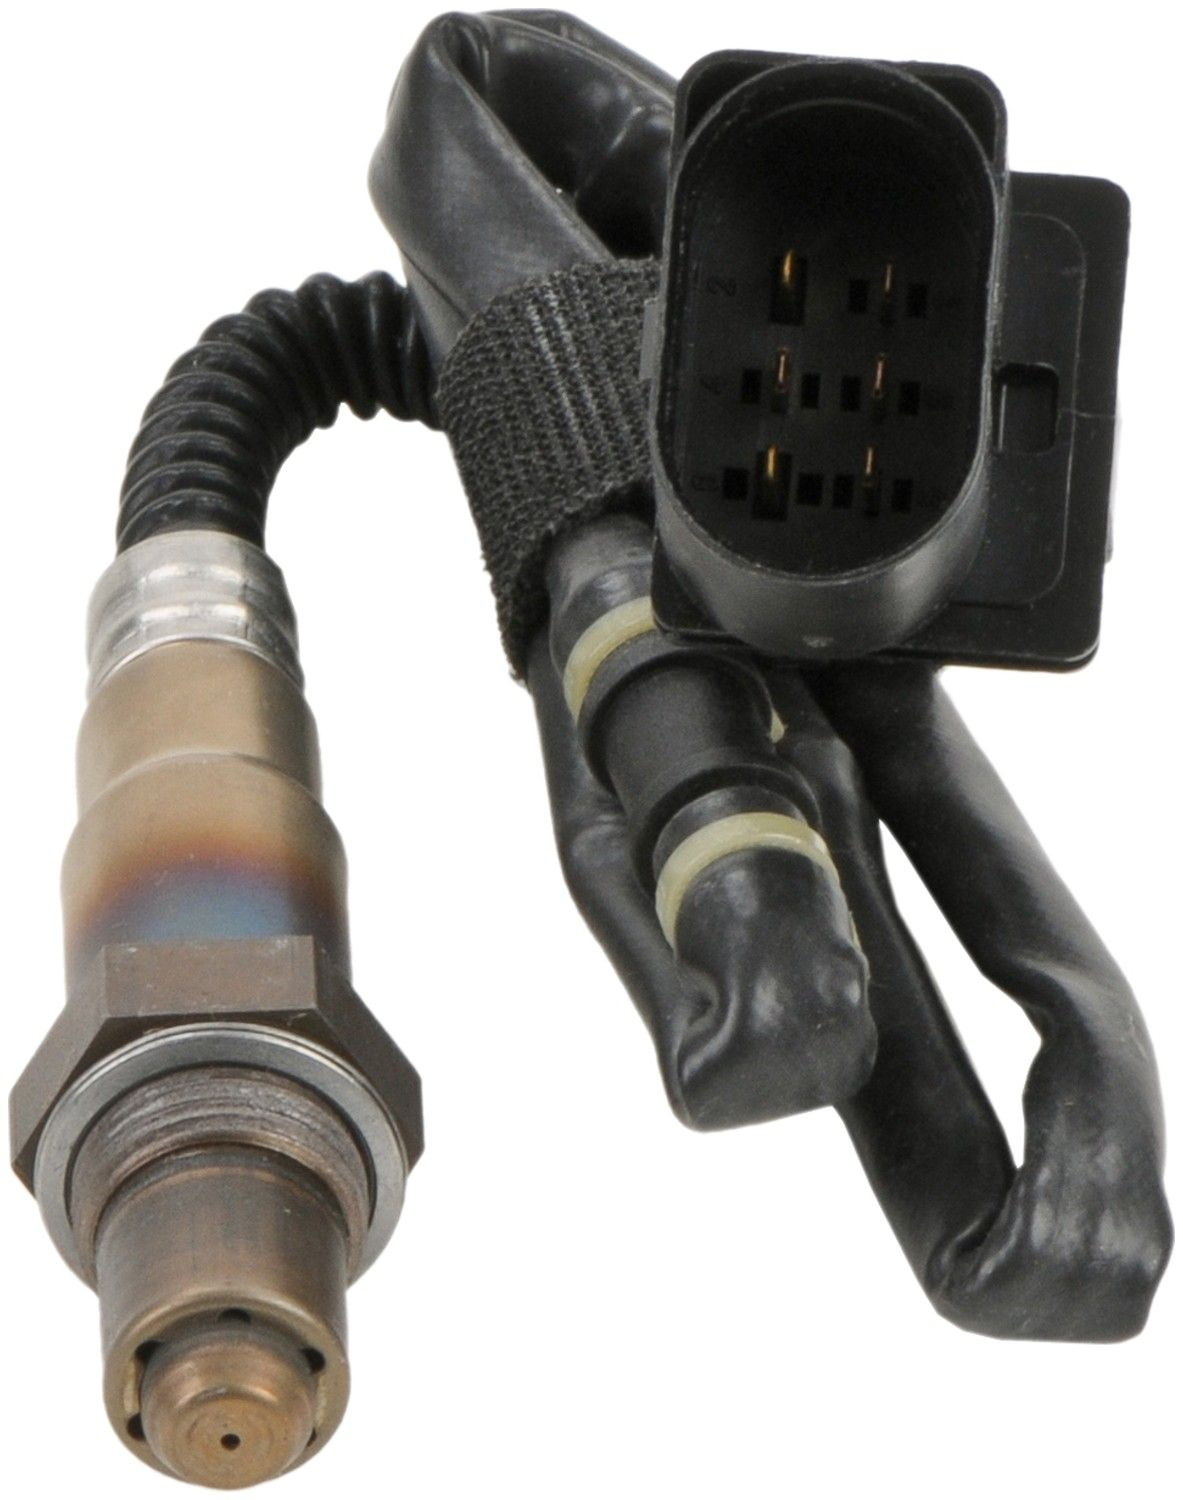 Volkswagen Eurovan Oxygen Sensor Replacement Bosch Delphi Denso 1999 Vw Ac Wiring 2001 Upstream 6 Cyl 28l 17014 Is The Oe Equivalent Supplier